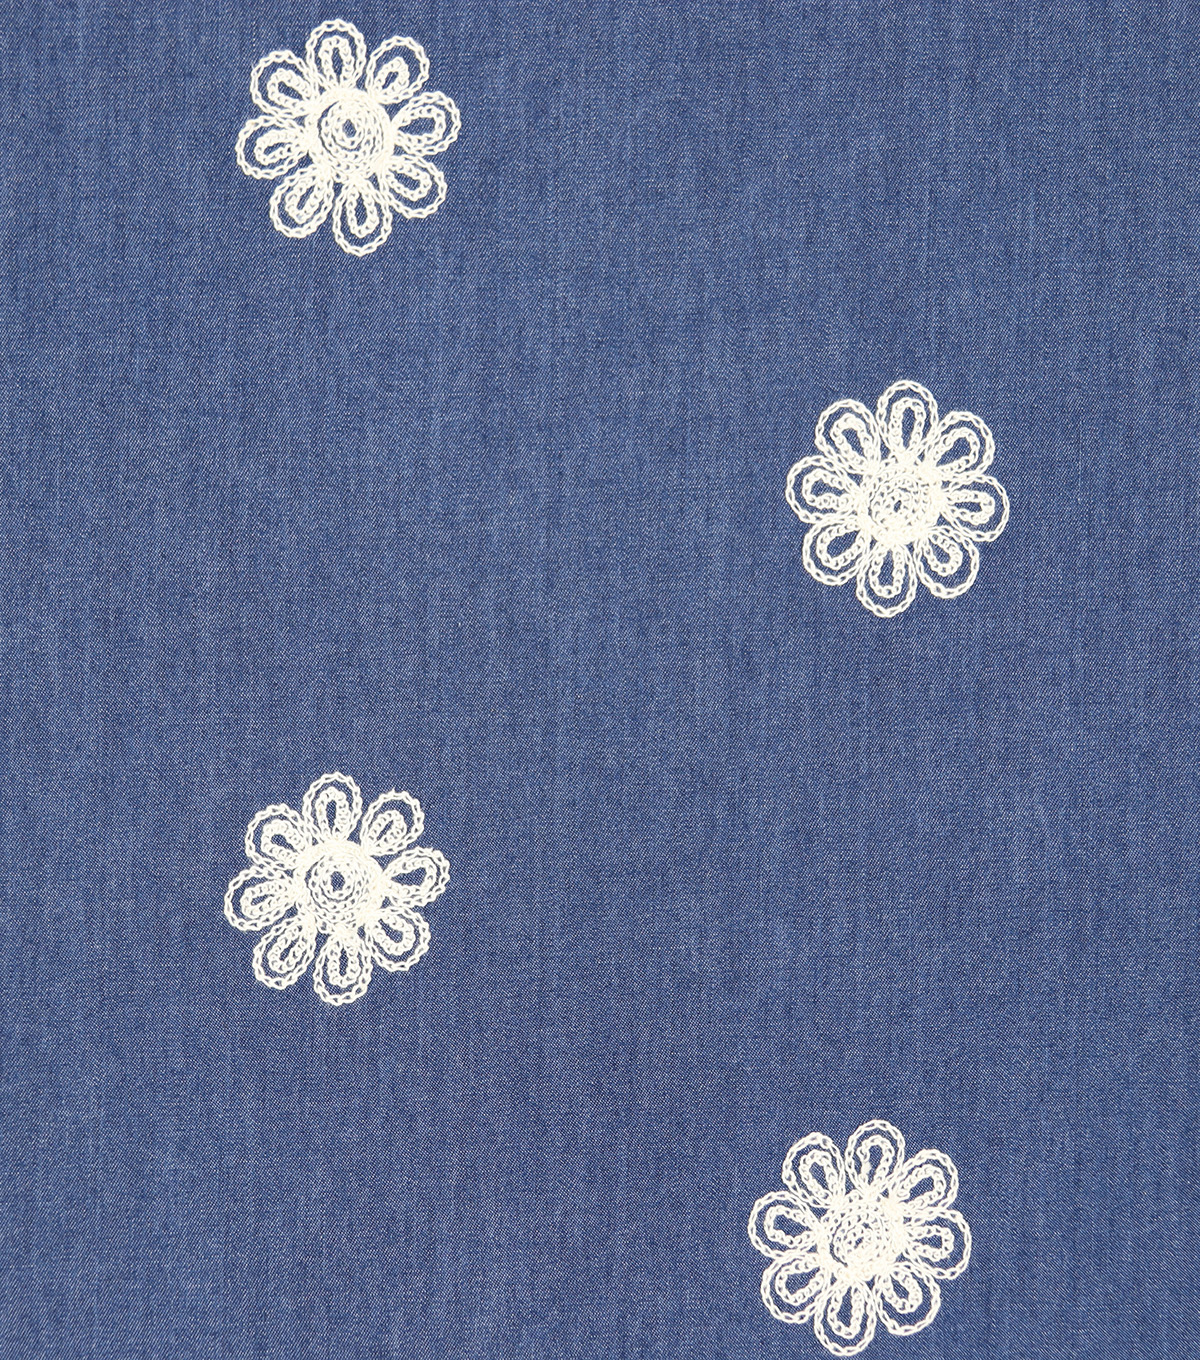 Dark Wash White Embroidered Flower Cotton Denim Fabric